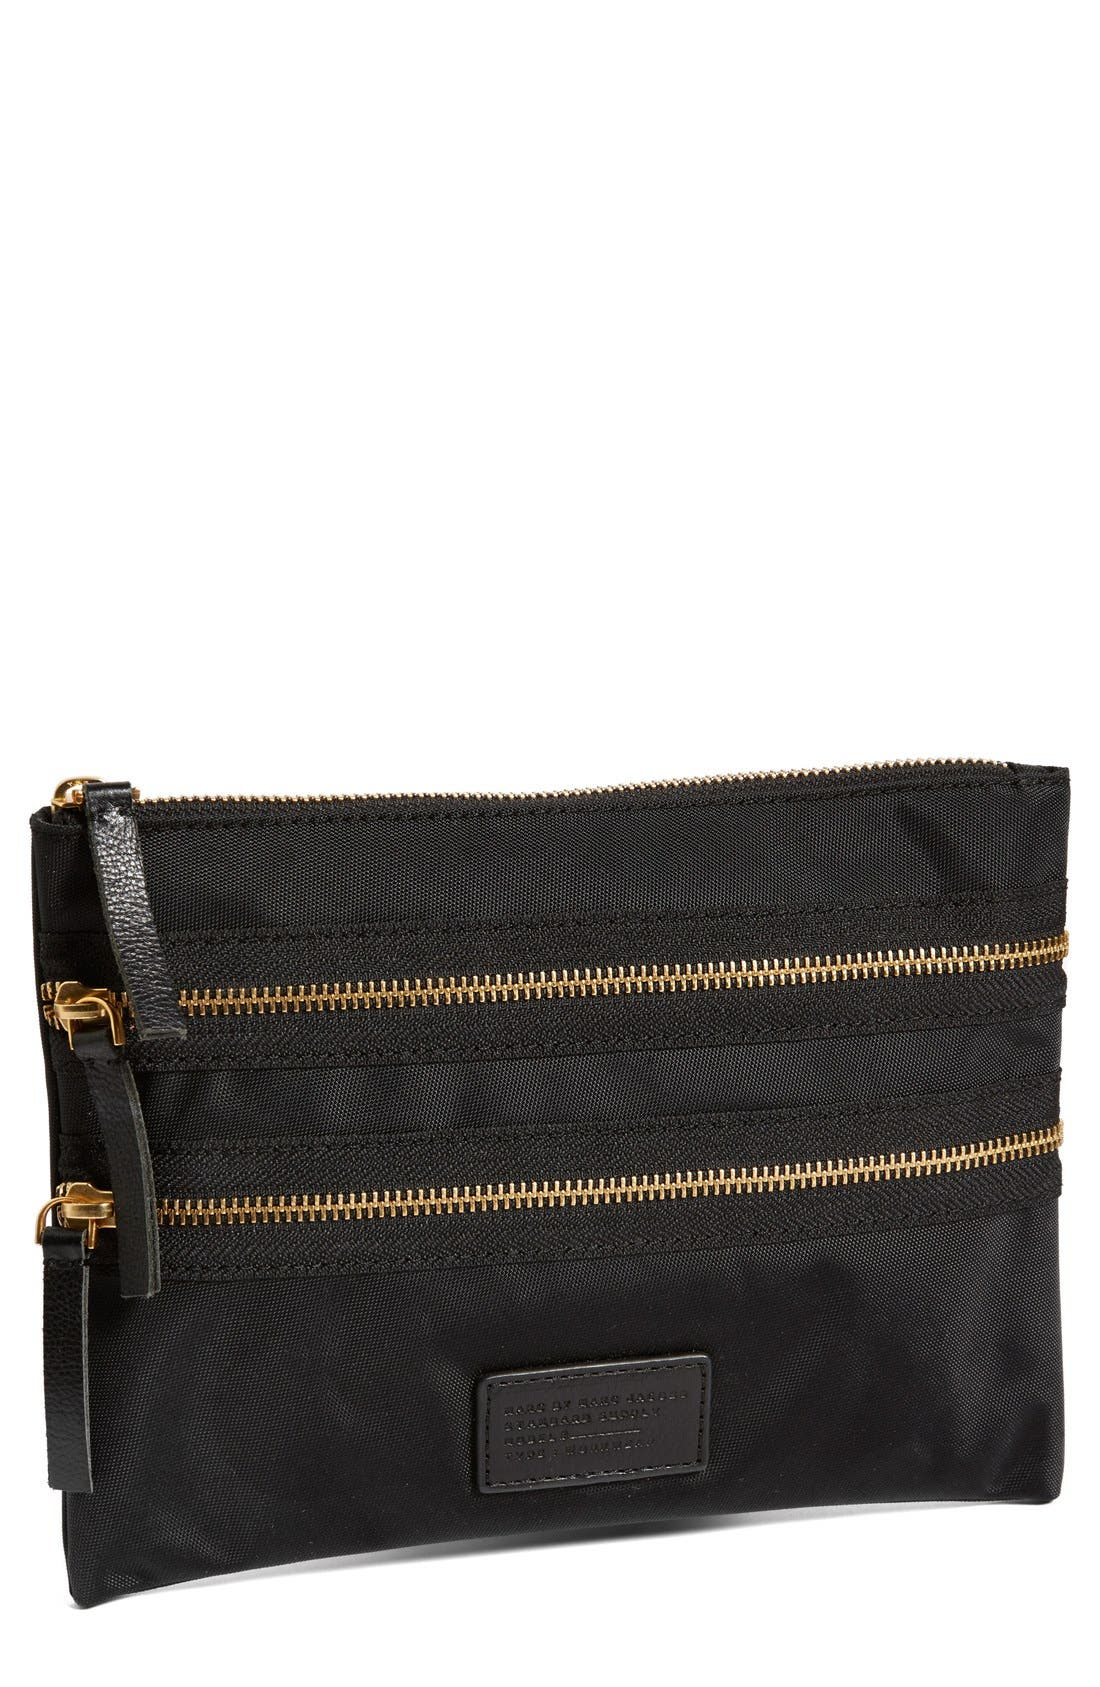 Main Image - MARC BY MARC JACOBS 'Domo Arigato' Zip Pouch